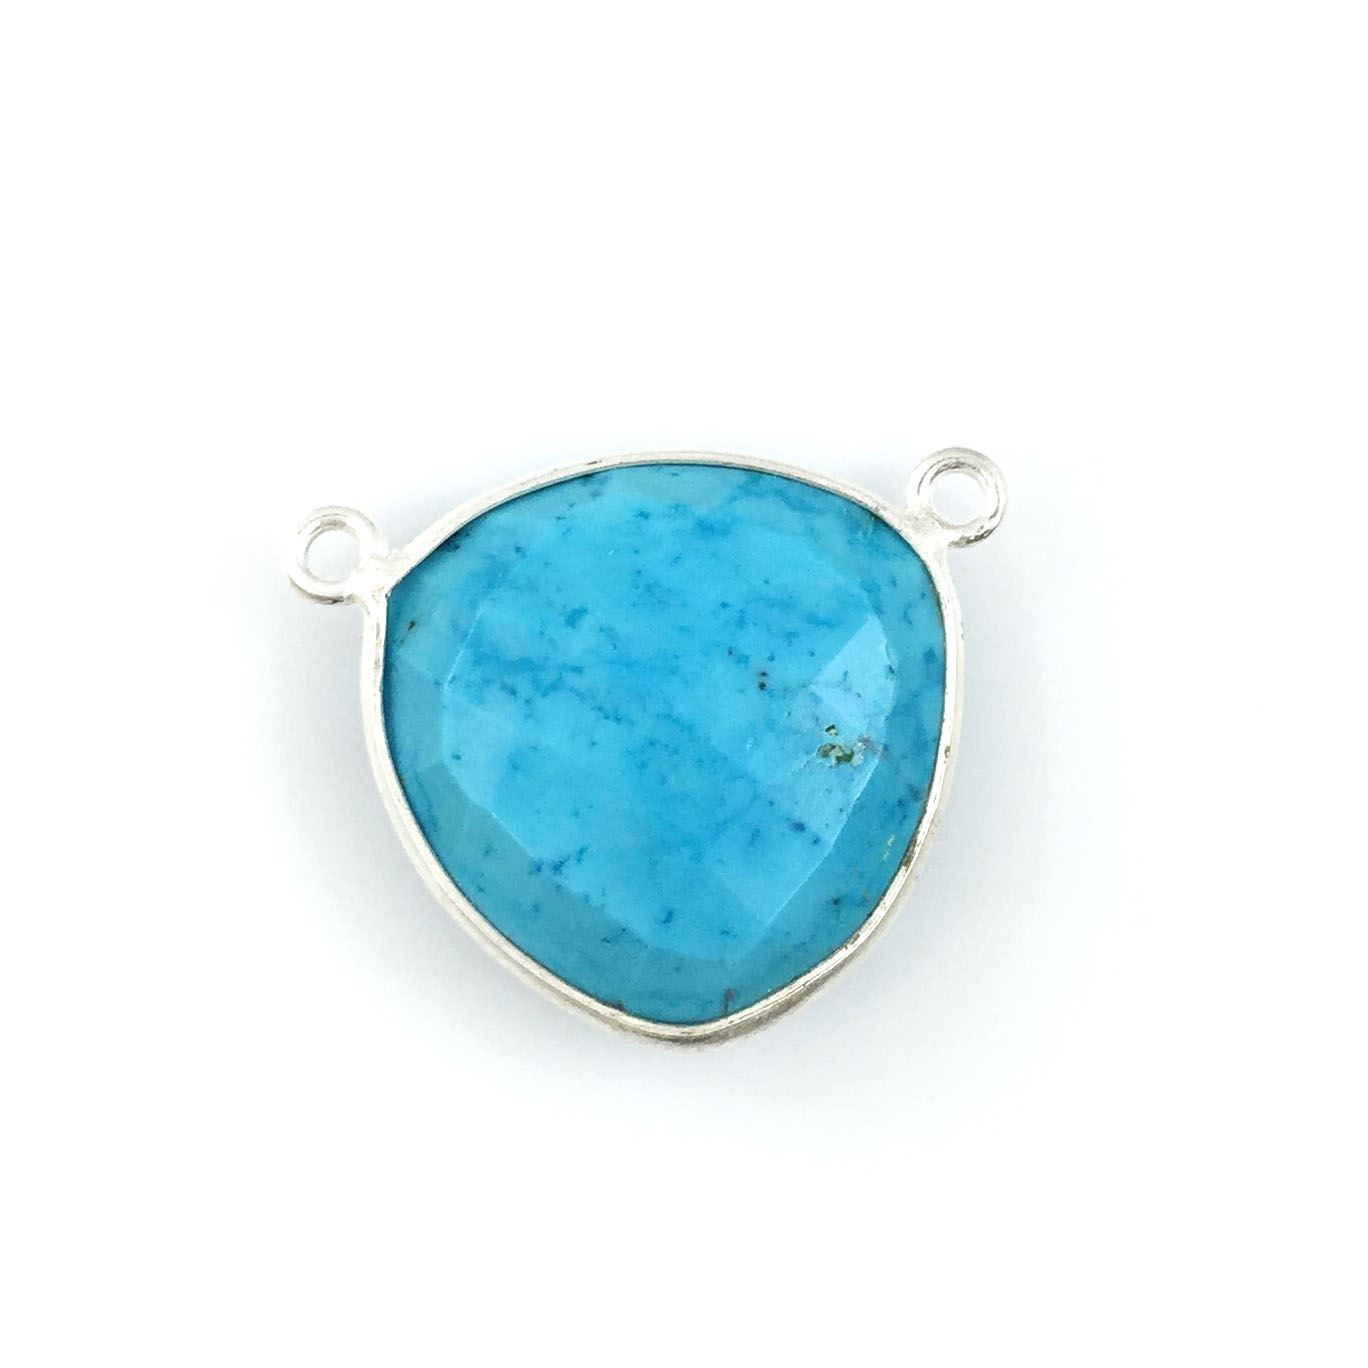 Bezel Gemstone Connector Pendant - Turquoise - Sterling Silver - Large Trillion Shaped Faceted - 18 mm - 1 piece